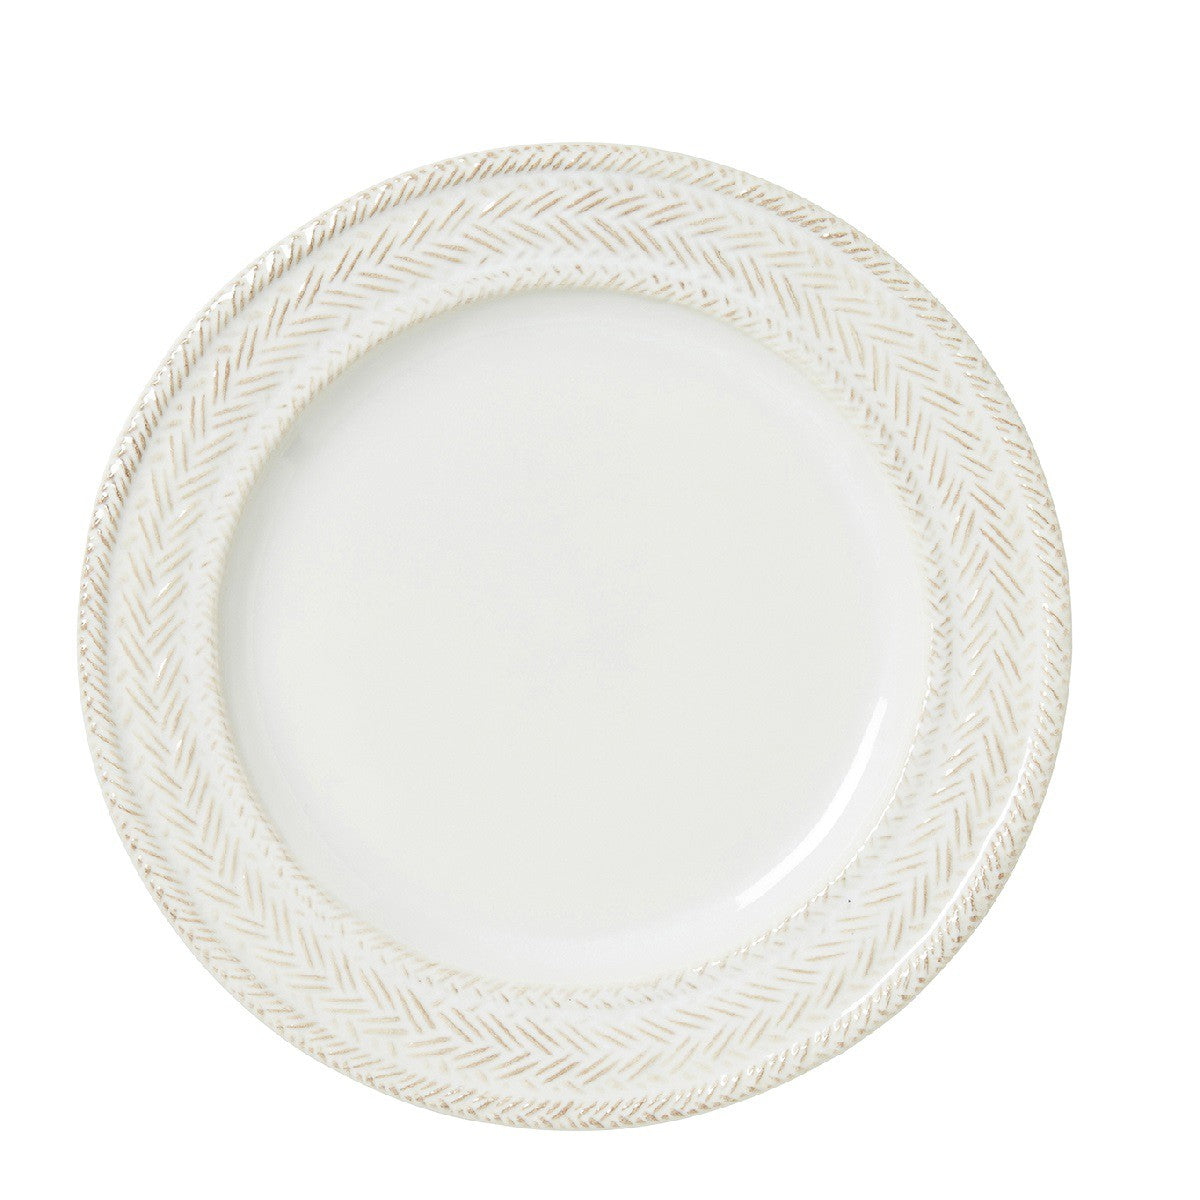 Juliska LP Wht Salad Plate